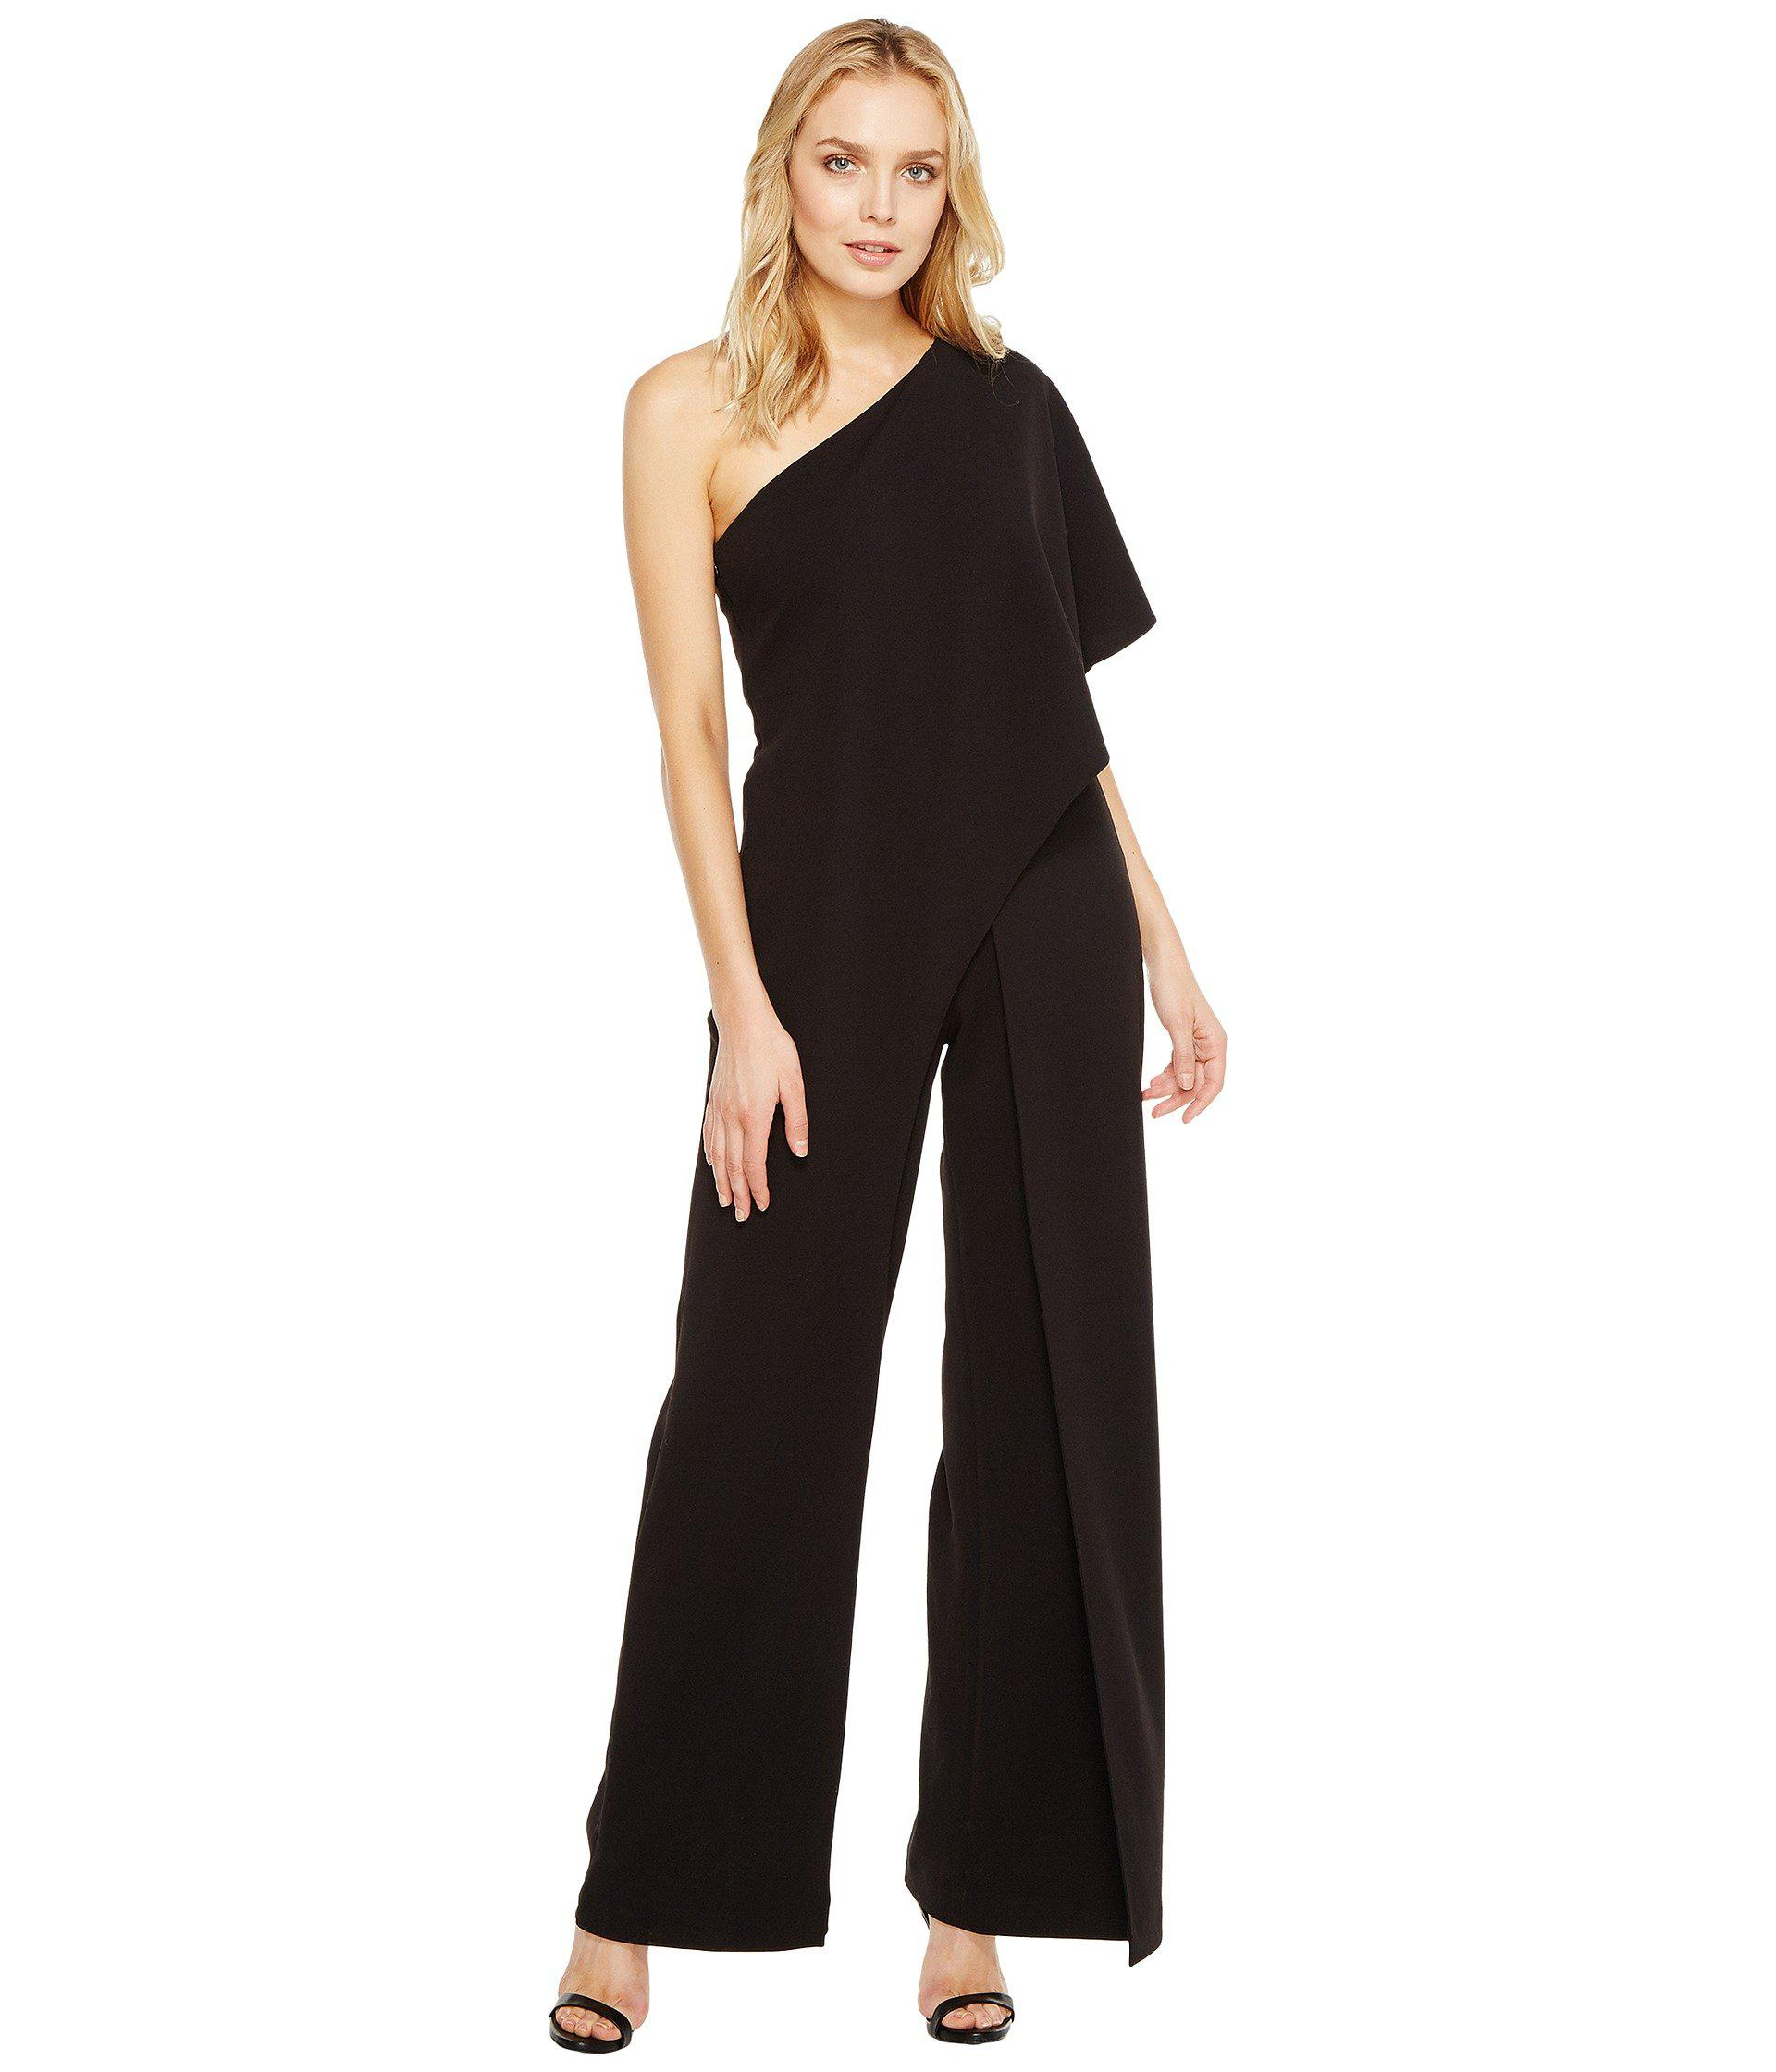 6618f5bc930 Adrianna Papell One Shoulder Jumpsuit (black) Women s Jumpsuit ...